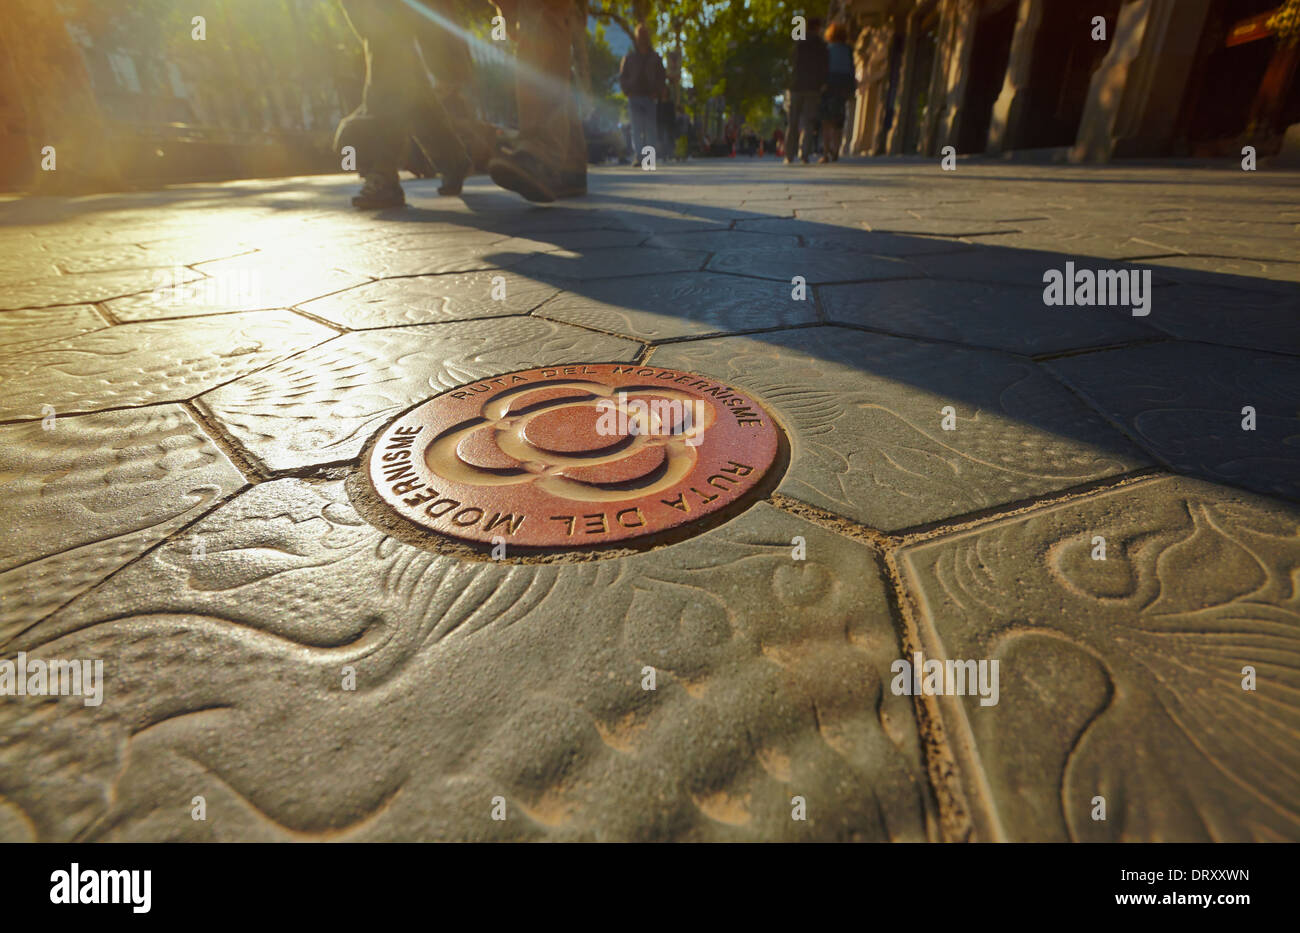 Modernism route sign on the Gaudí paving stone design at the Passeig de Gracia avenue. Barcelona. Catalonia. Spain - Stock Image